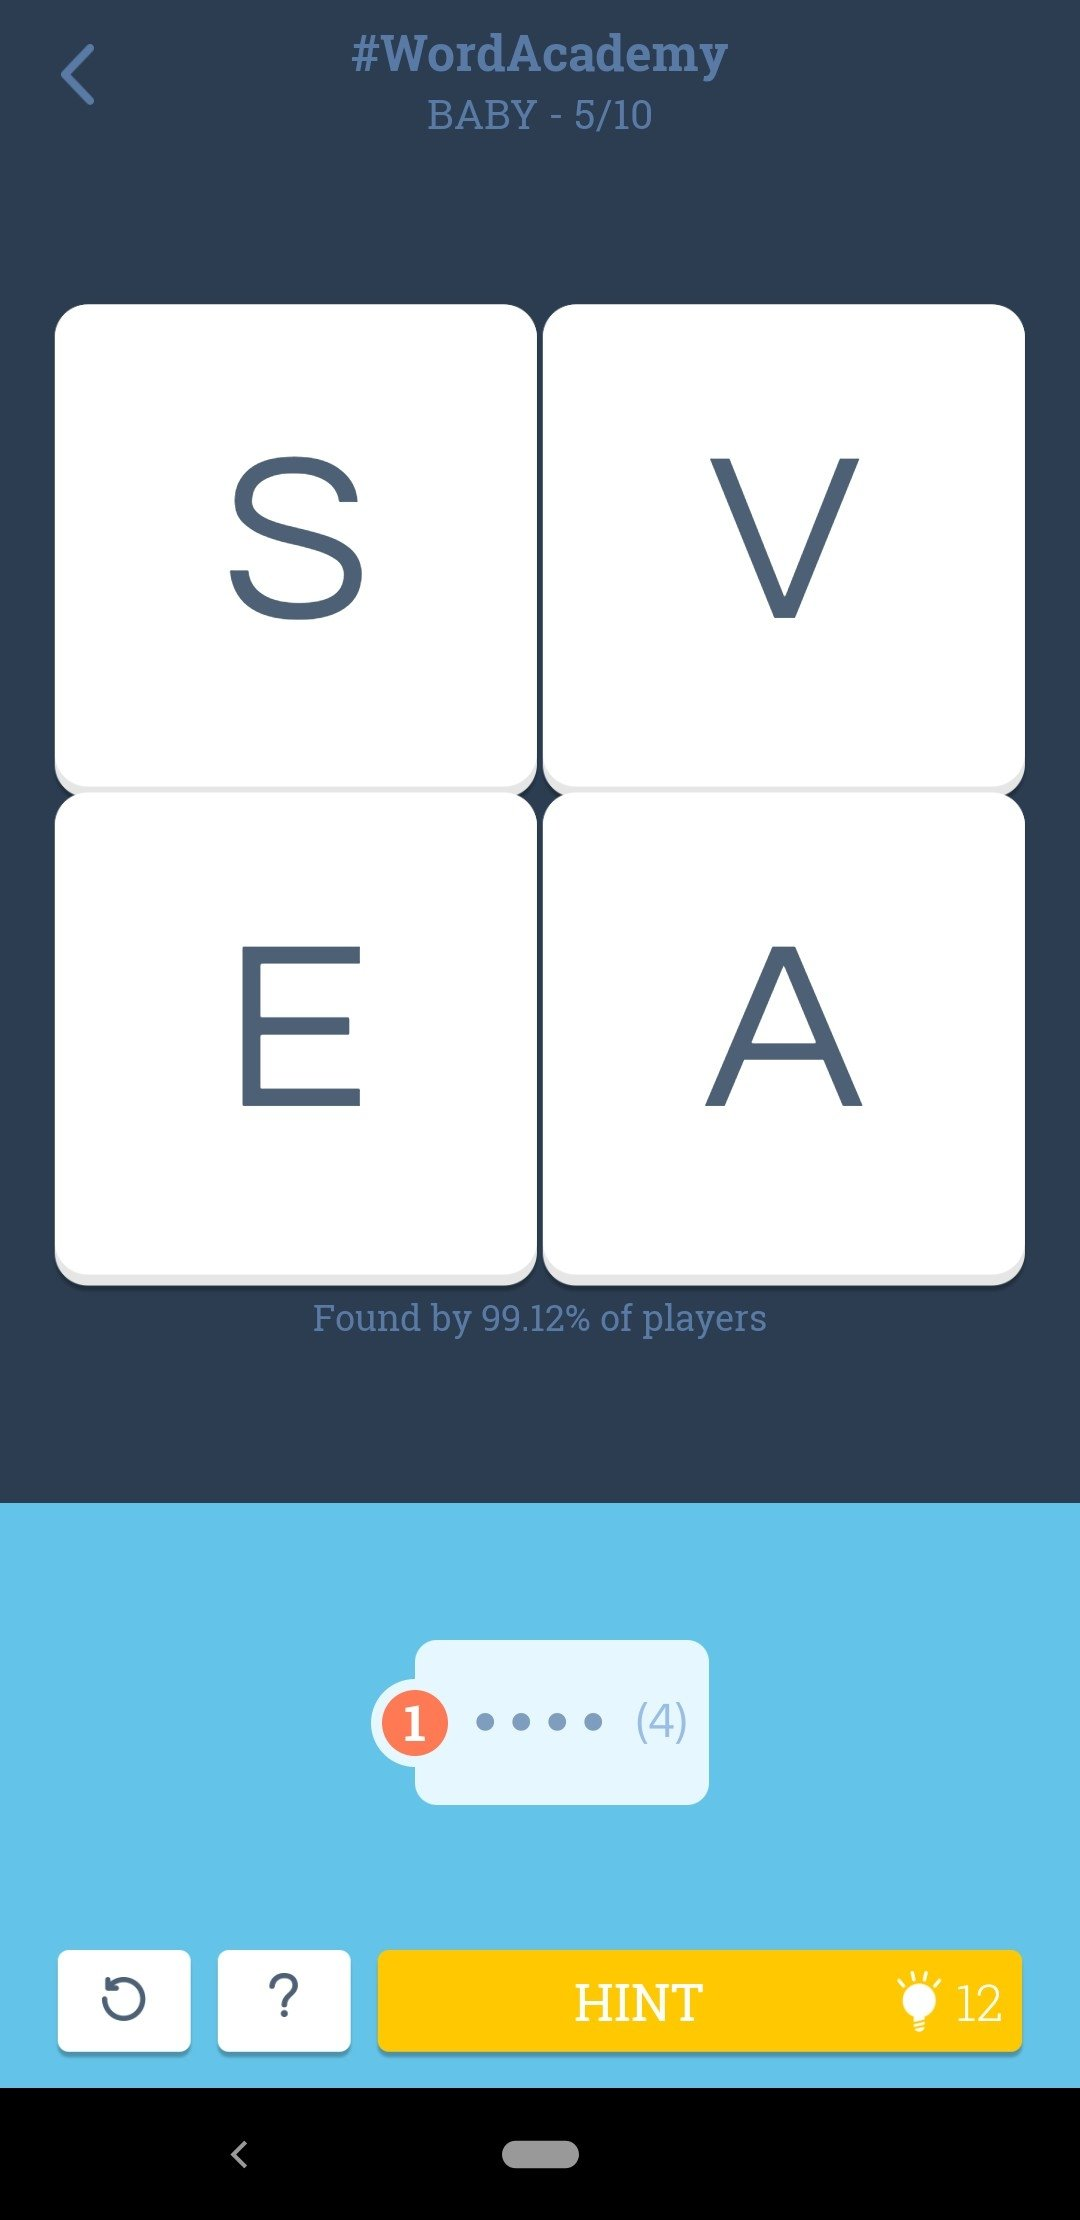 Word Academy Android image 4